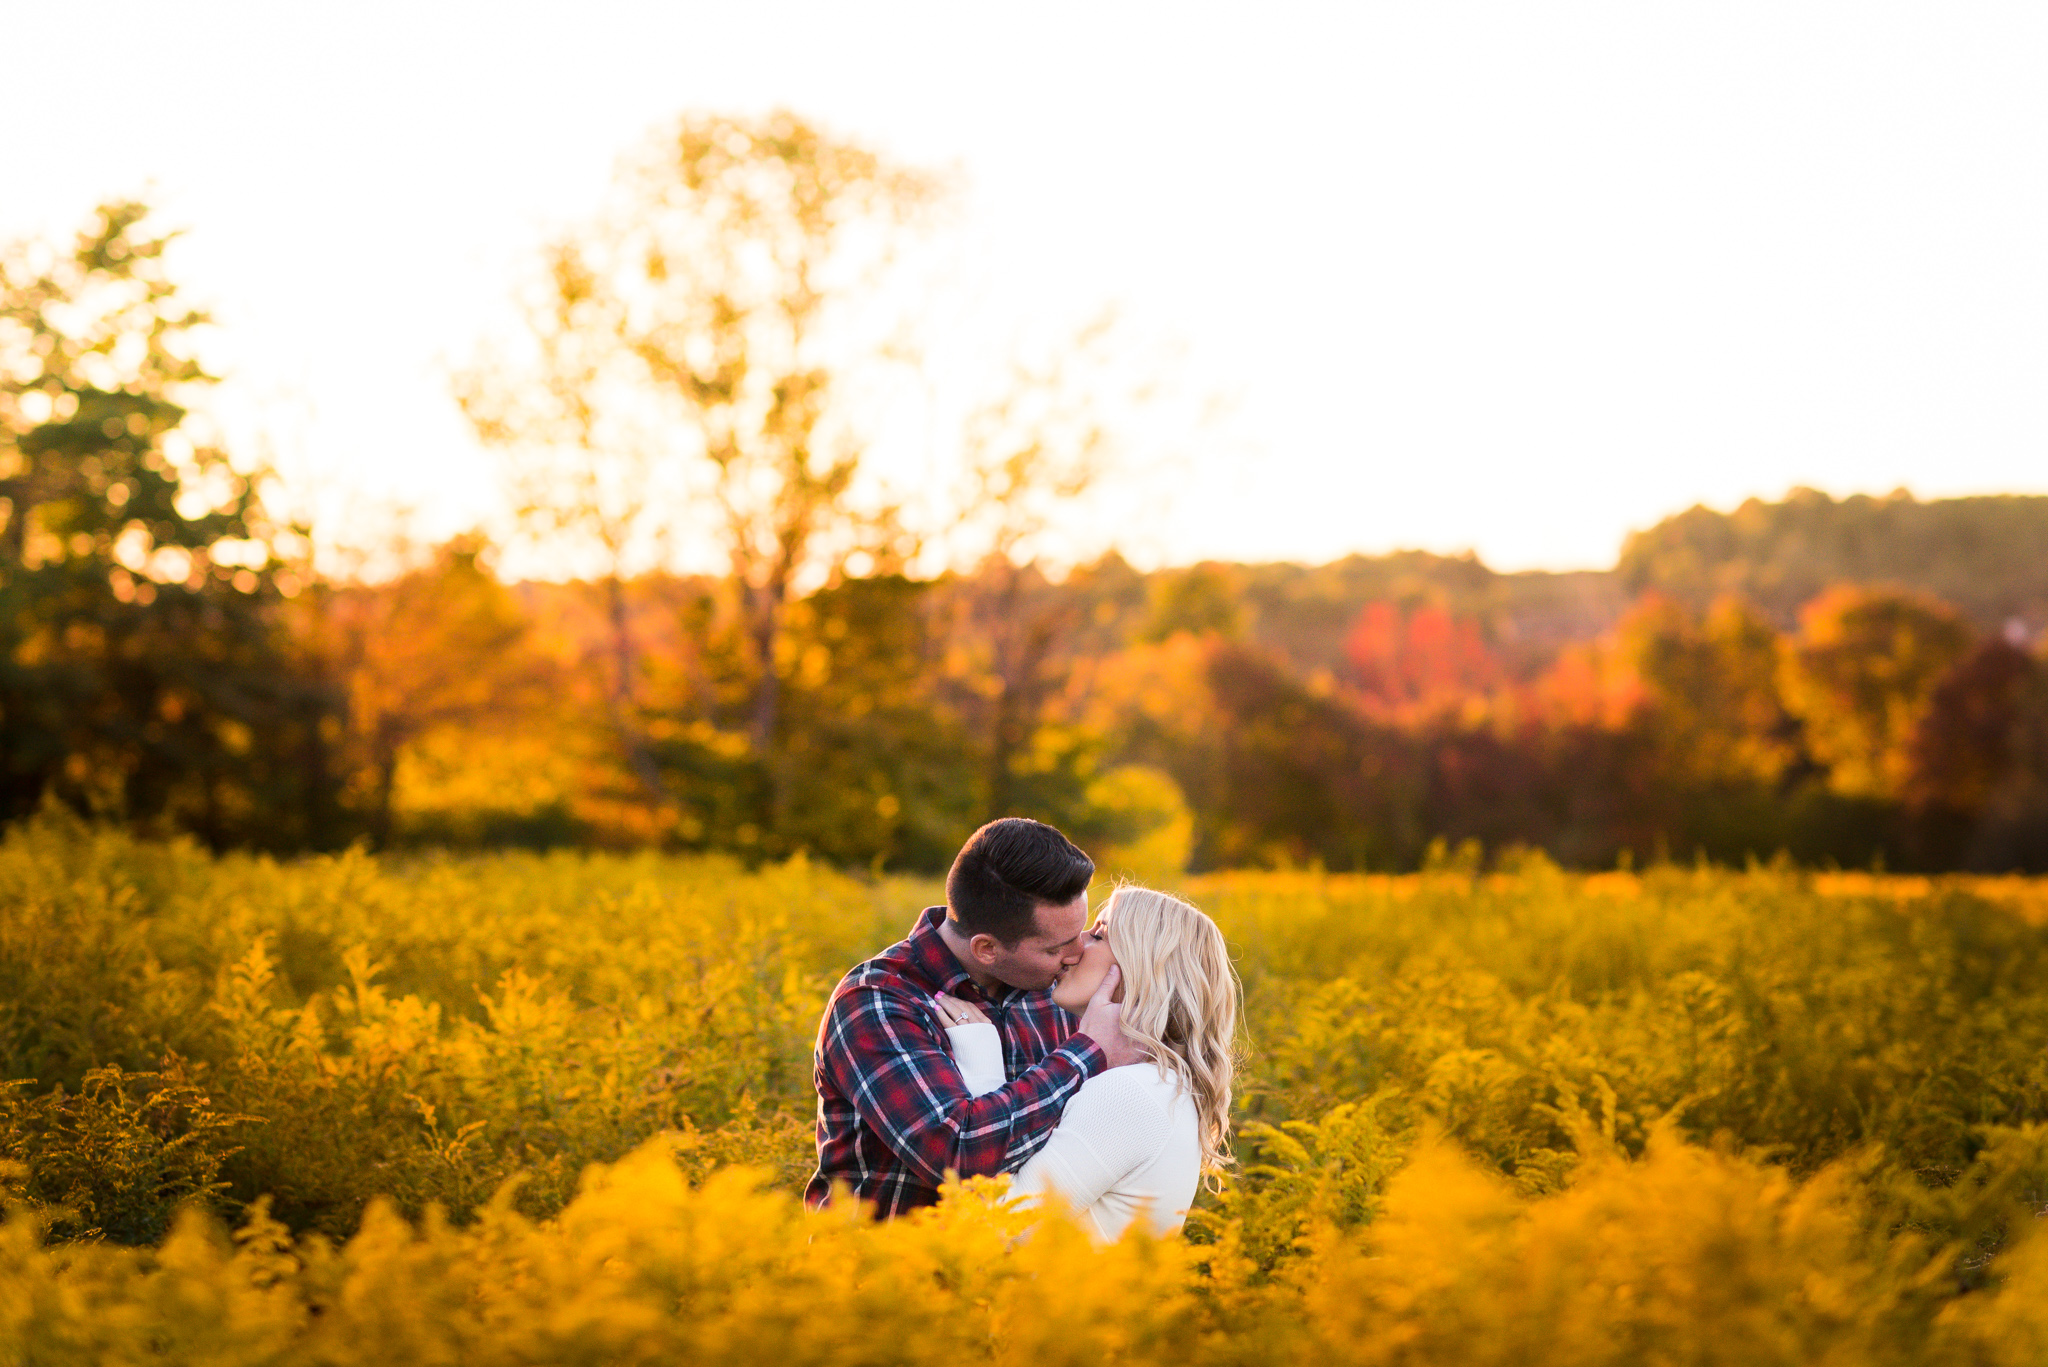 Mindy-Engagement-photography-wedding-photographer-northeast-PA-Scranton-Poconos-32.jpg